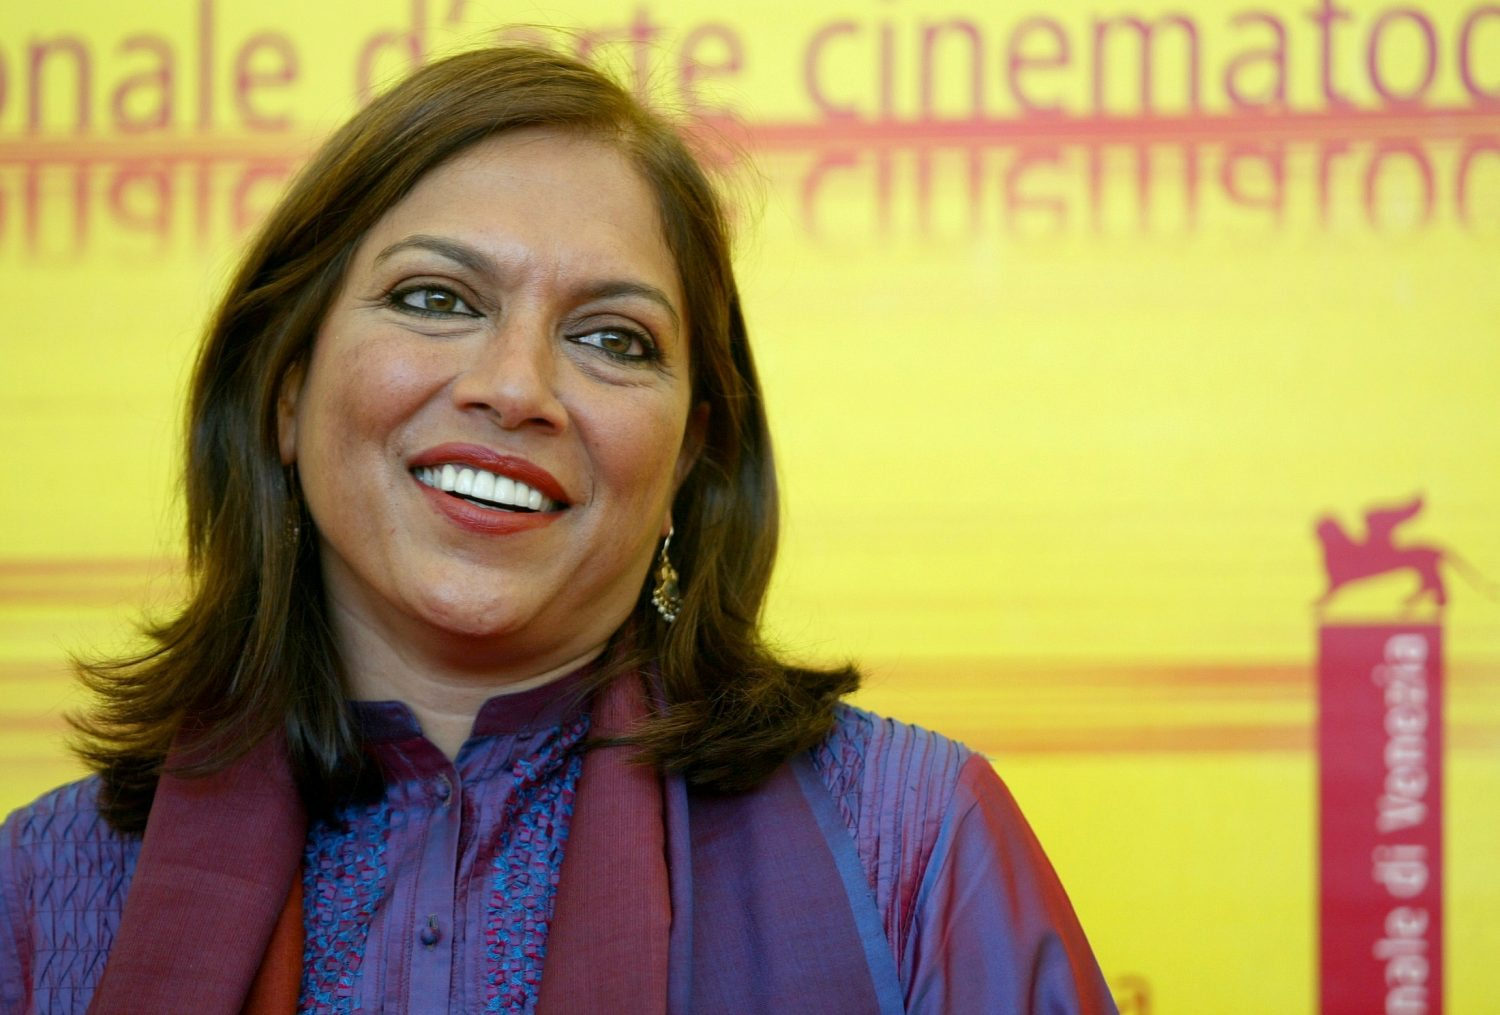 Indian director Mira Nair poses during a photo call at the Venice Lido September 5, 2004. Nair's movie 'Vanity Fair' is in competition at the Venice film festival. - RTXMX6R